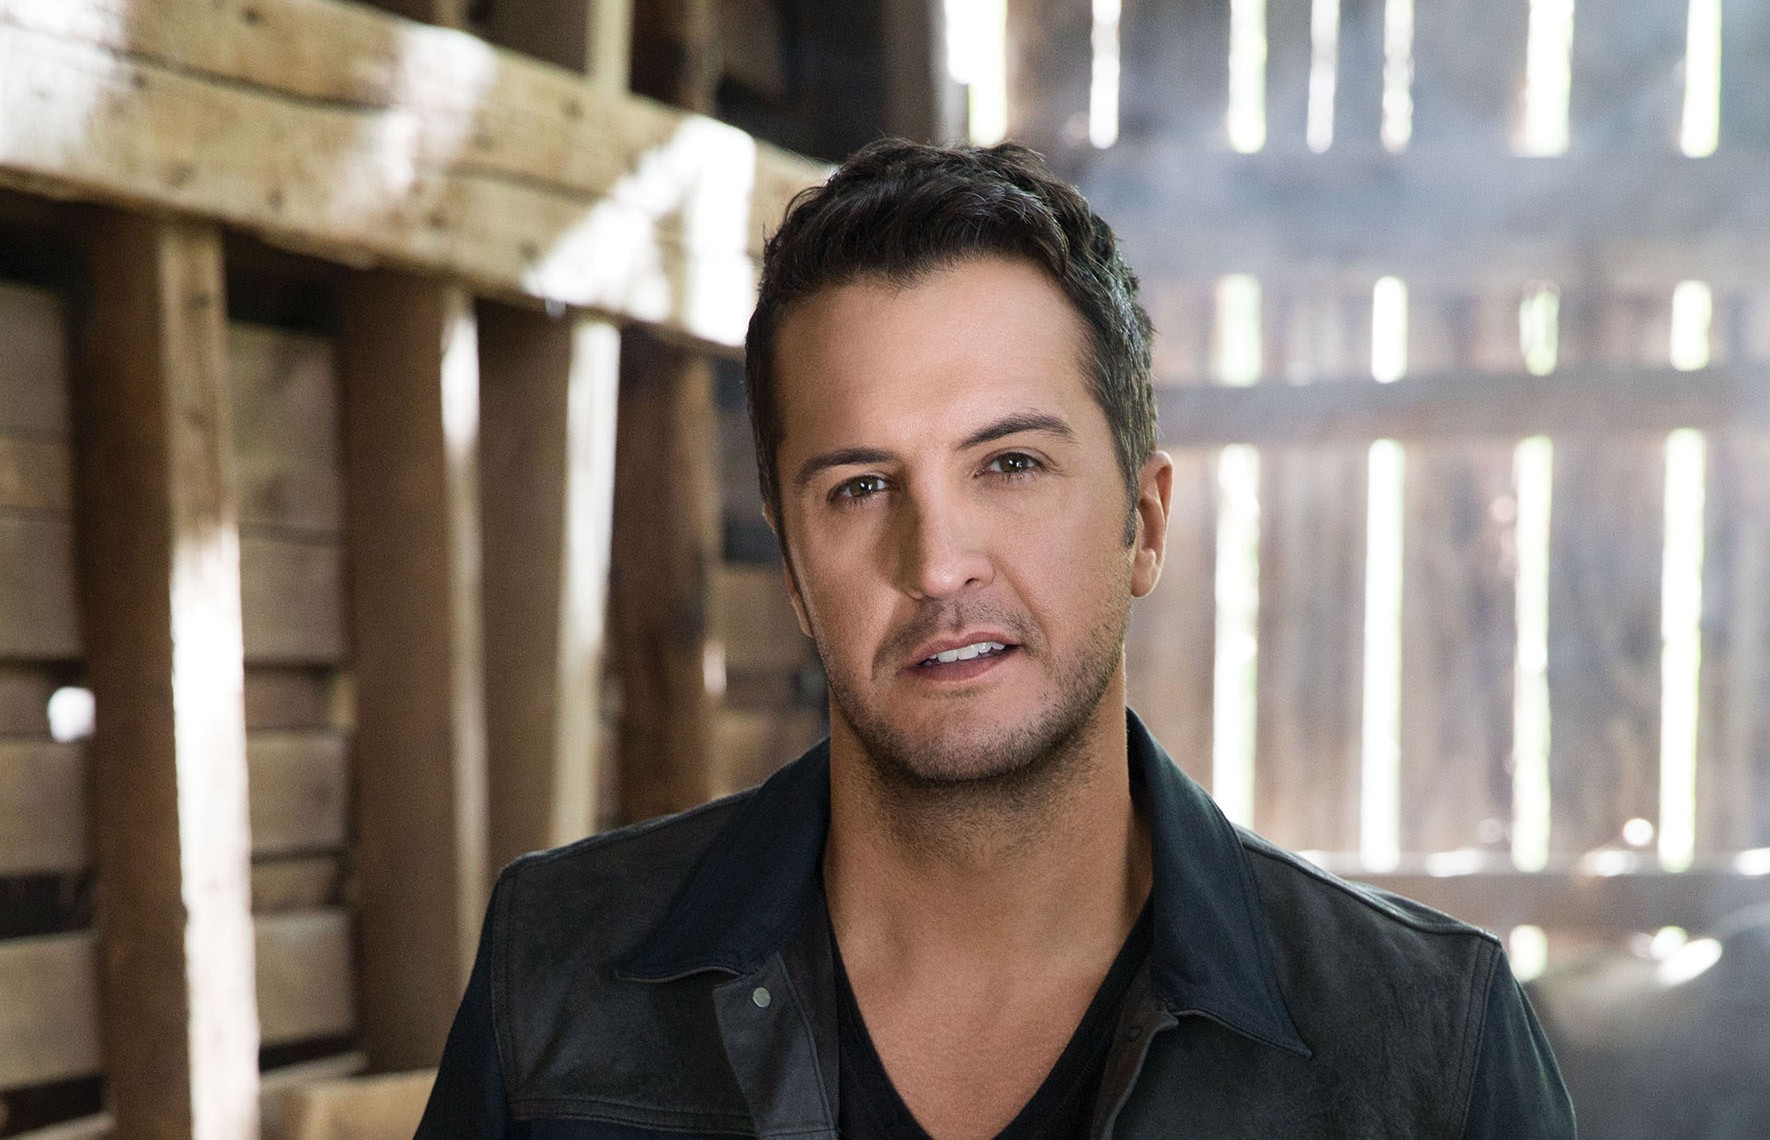 luke bryan do i chordsluke bryan fast, luke bryan move, luke bryan скачать, luke bryan fast скачать, luke bryan - kick the dust up, luke bryan - country girl, luke bryan move скачать, luke bryan tour, luke bryan home alone tonight, luke bryan - drink a beer перевод, luke bryan - run run rudolph, luke bryan strip it down, luke bryan songs, luke bryan - rain is a good thing, luke bryan слушать, luke bryan - play it again, luke bryan – drink a beer, luke bryan play it again перевод, luke bryan do i chords, luke bryan instrumental